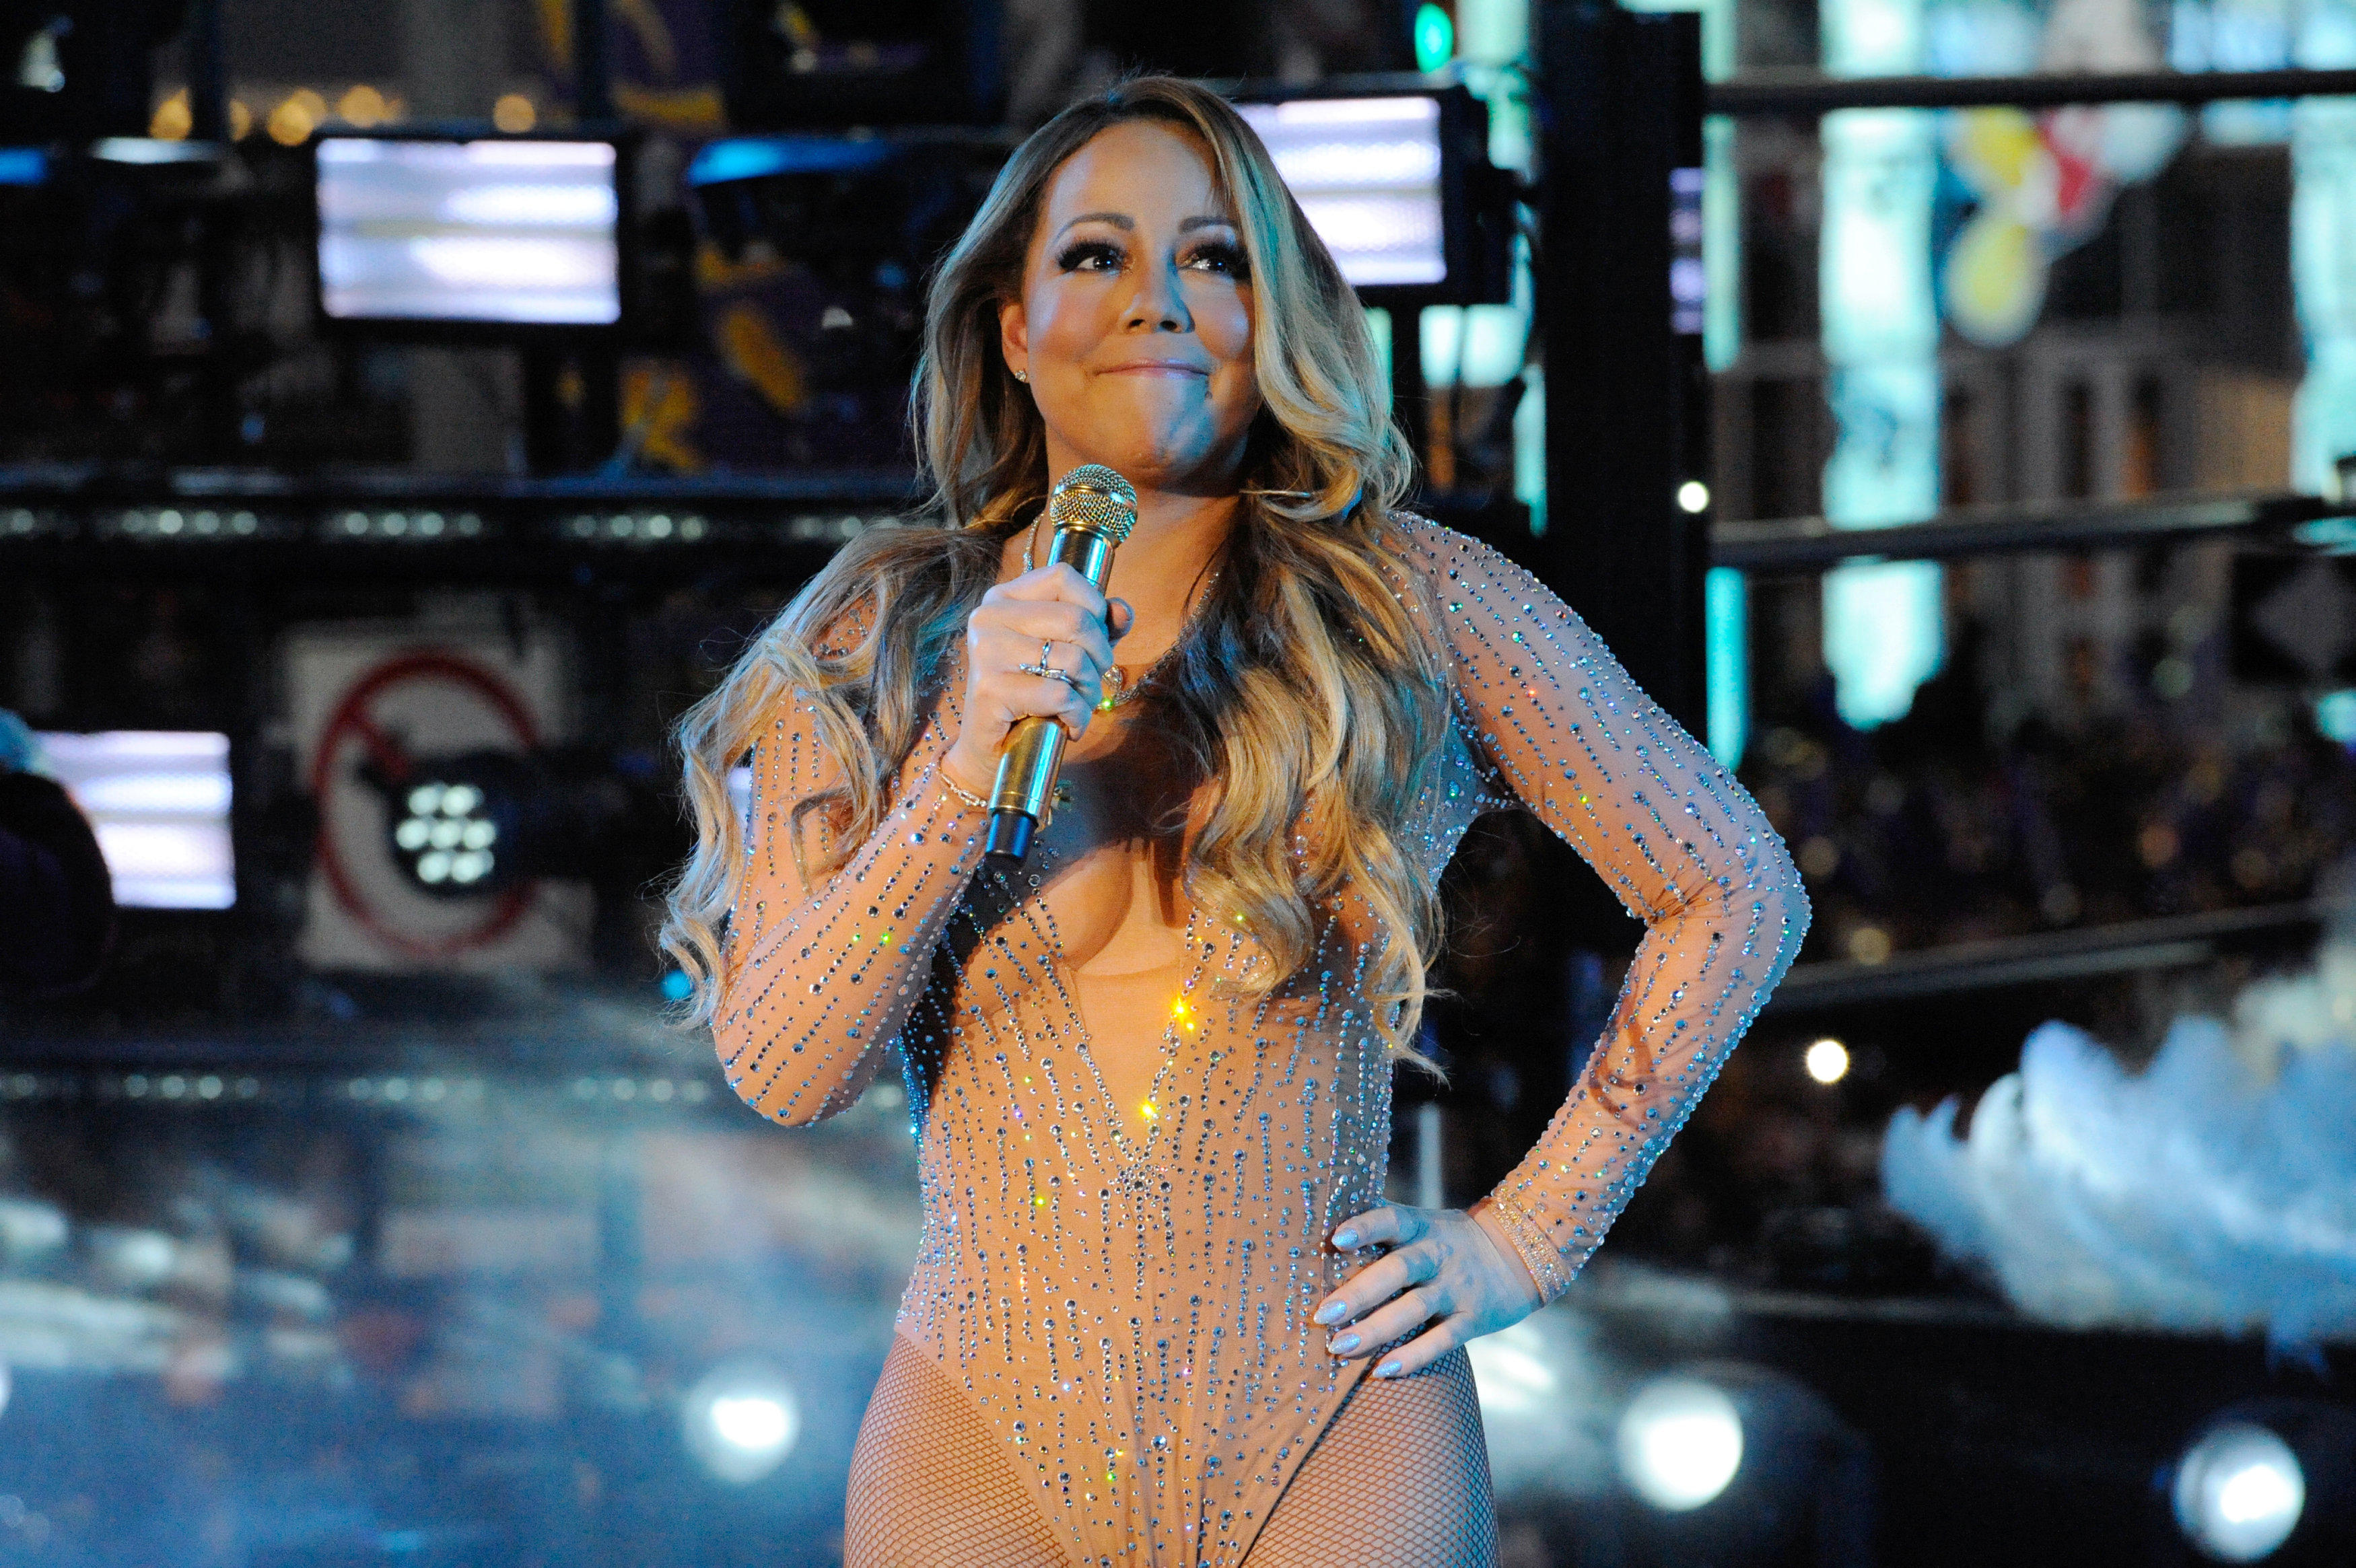 Mariah Carey New Years 2020 Mariah Carey Times Square New Year's Eve performance: Singer's